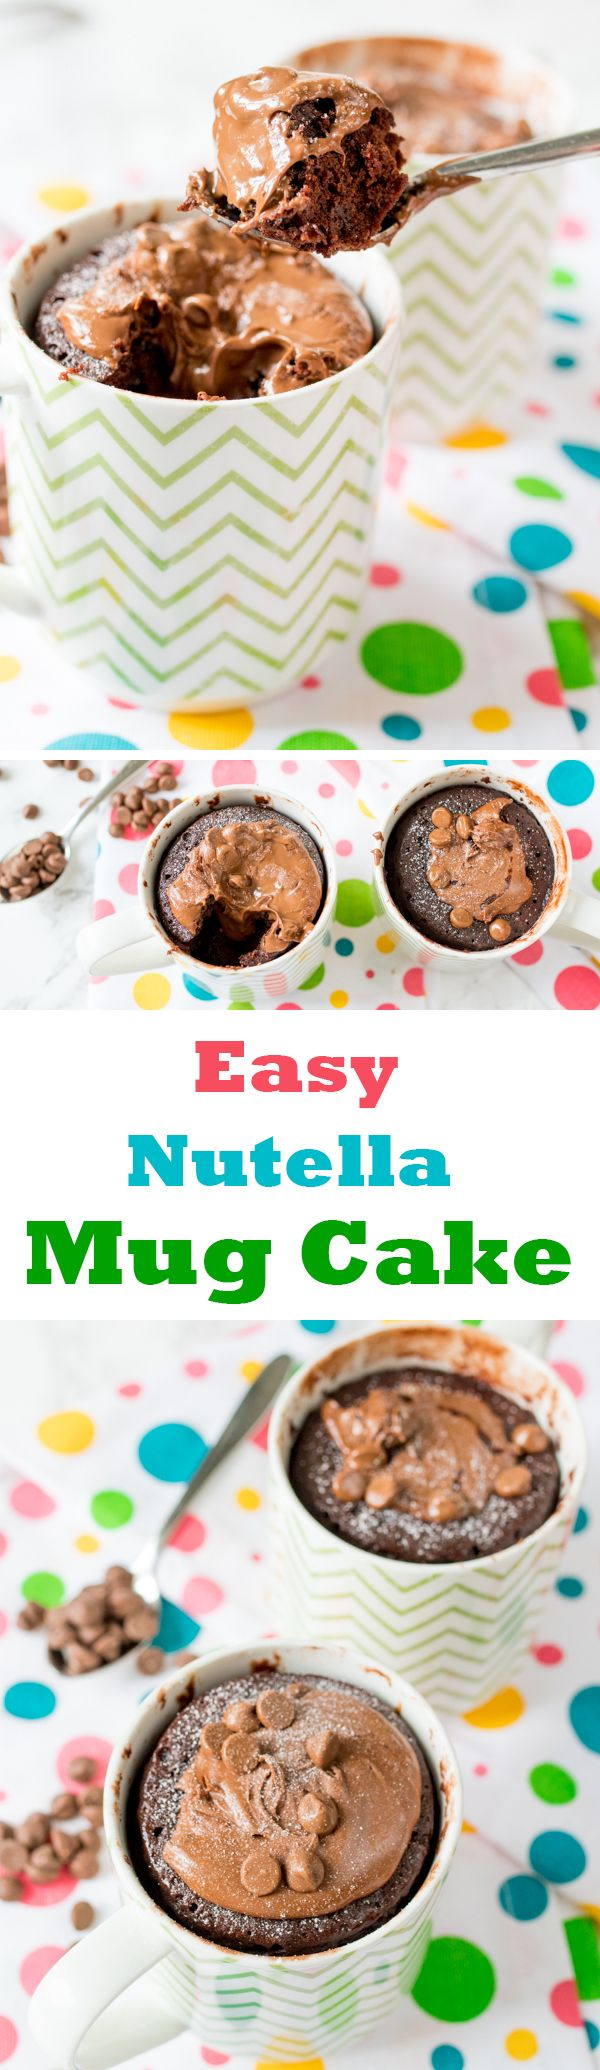 NUTELLA MUG CAKE – a light and fluffy chocolate cake for one – with lashings of warm Nutella!